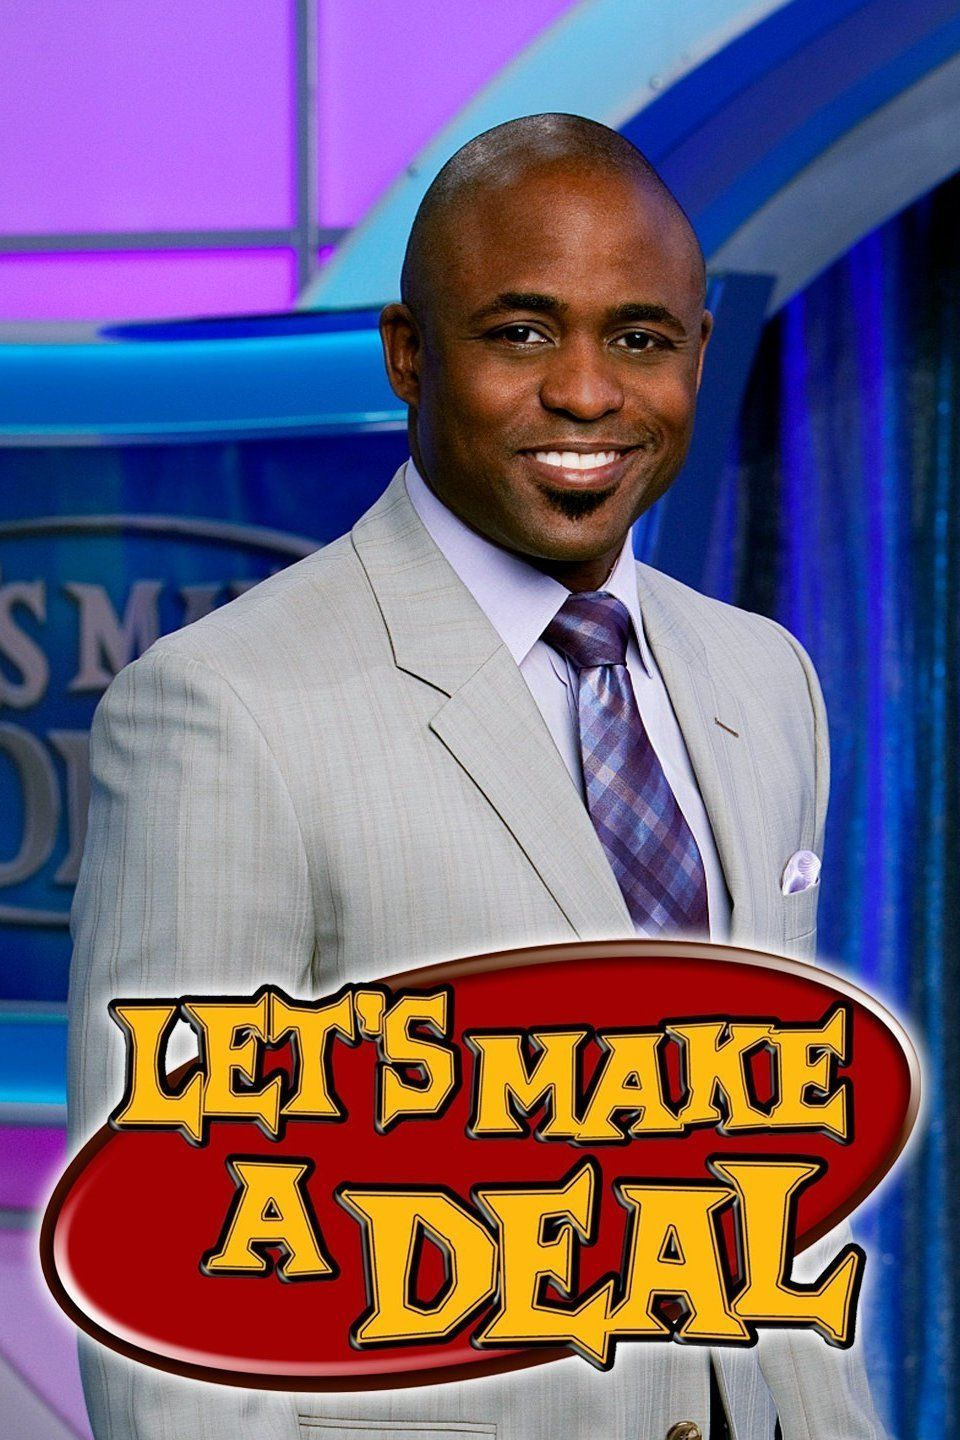 lets make a deal Product description let's make a deal new version of this top-rated tv game show with comedian/host wayne brady join in the fun and suspense of making deals.